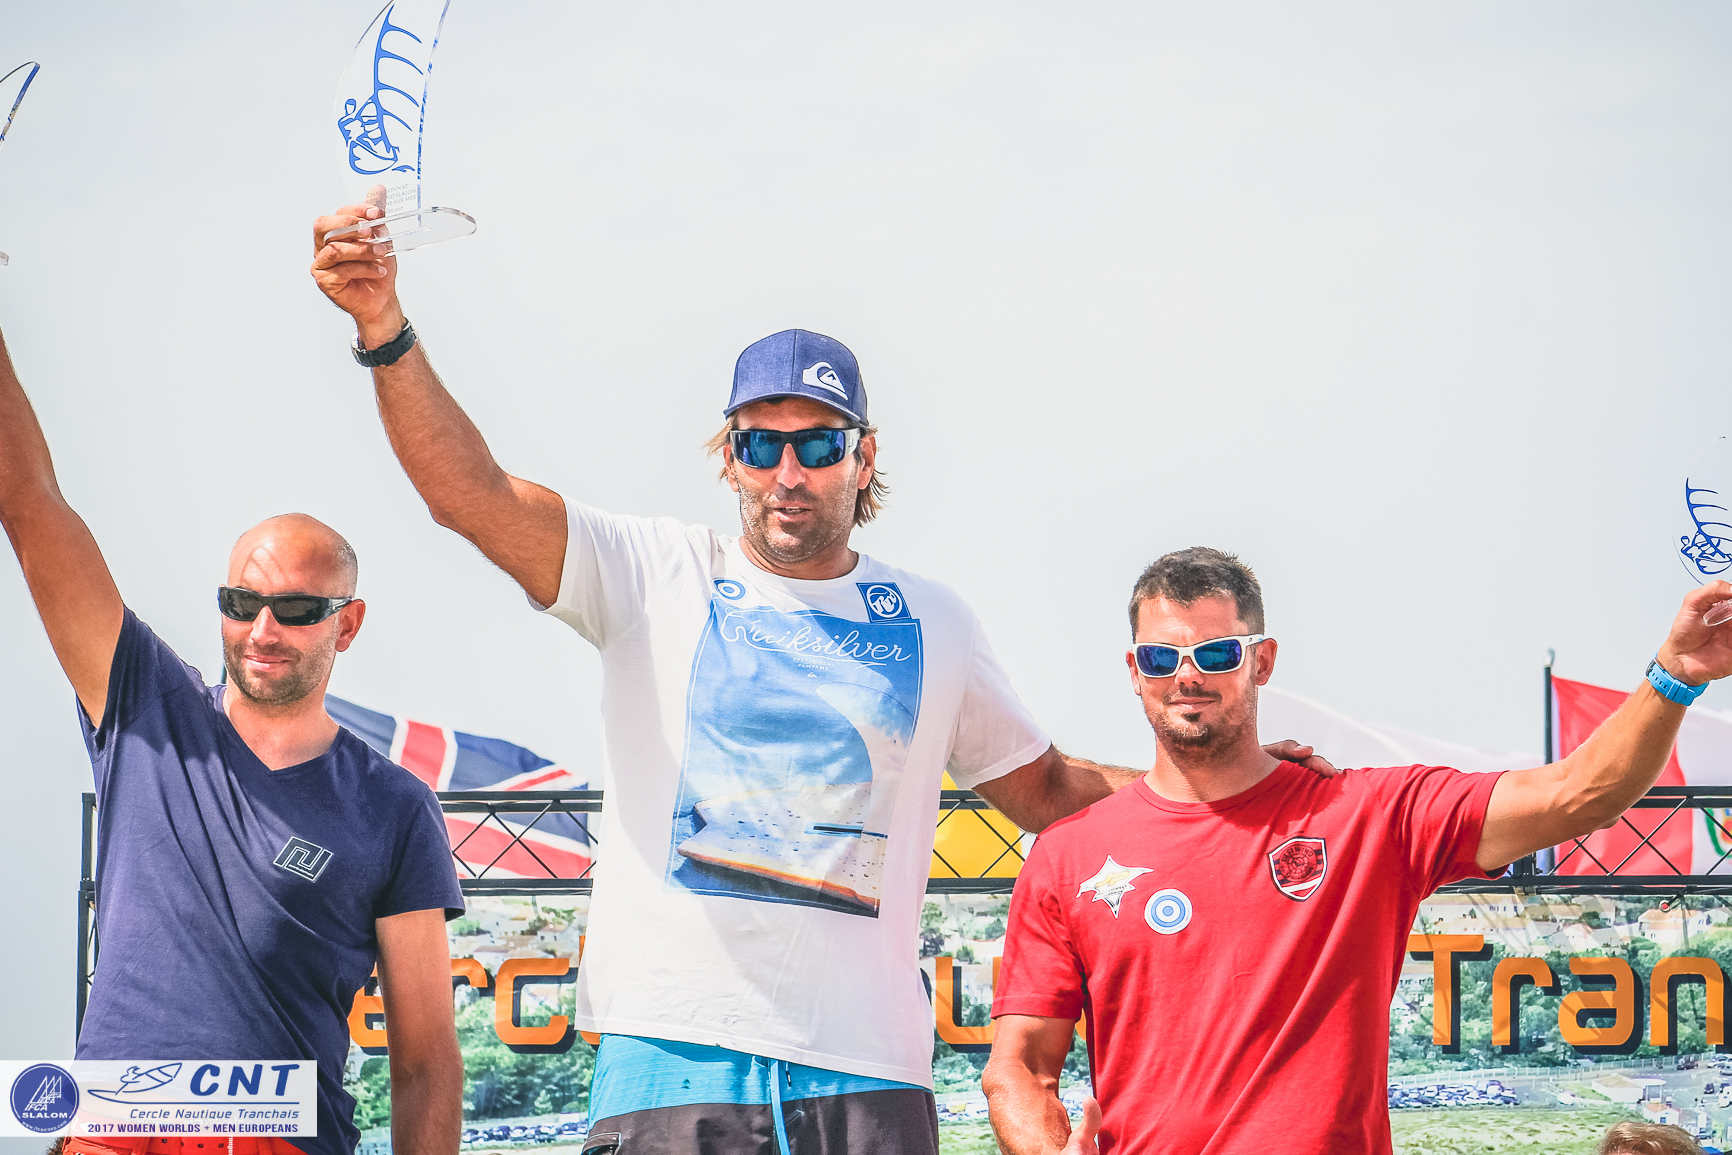 IFCA SLALOM LA TTRANCHE 2017-Final (12 of 19)